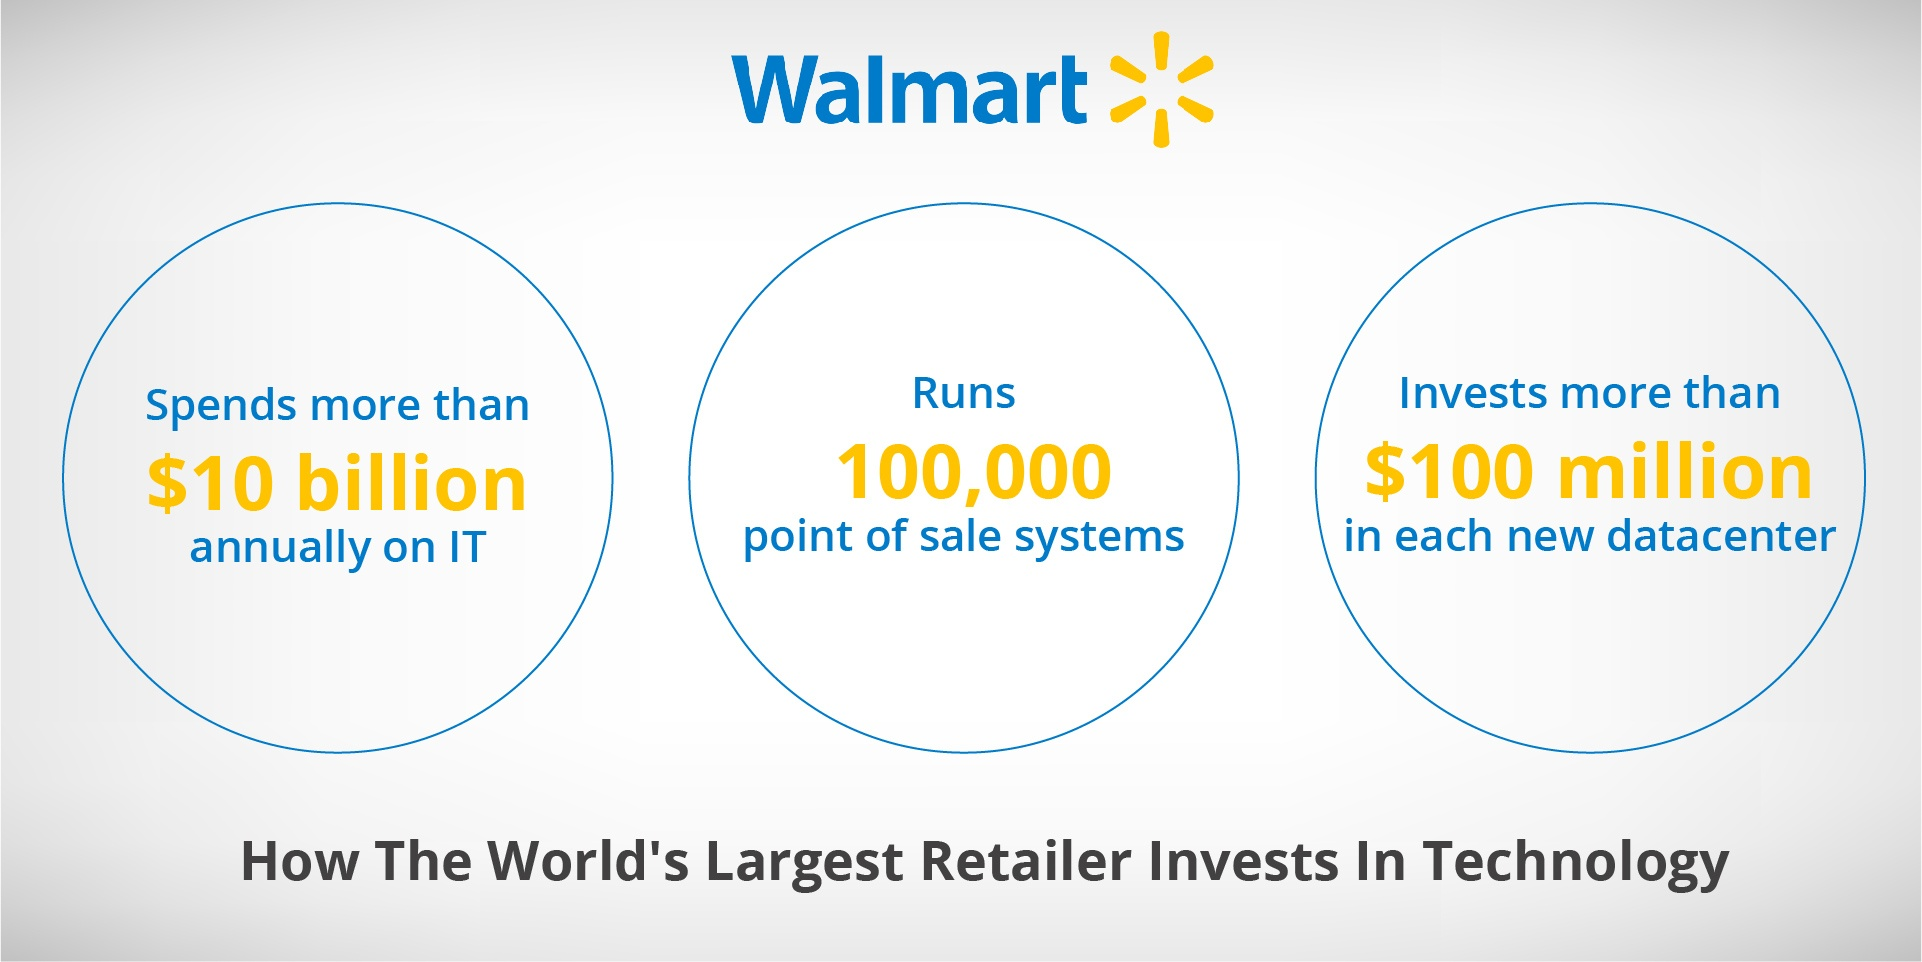 How The World's Largest Retailer Invests In Technology